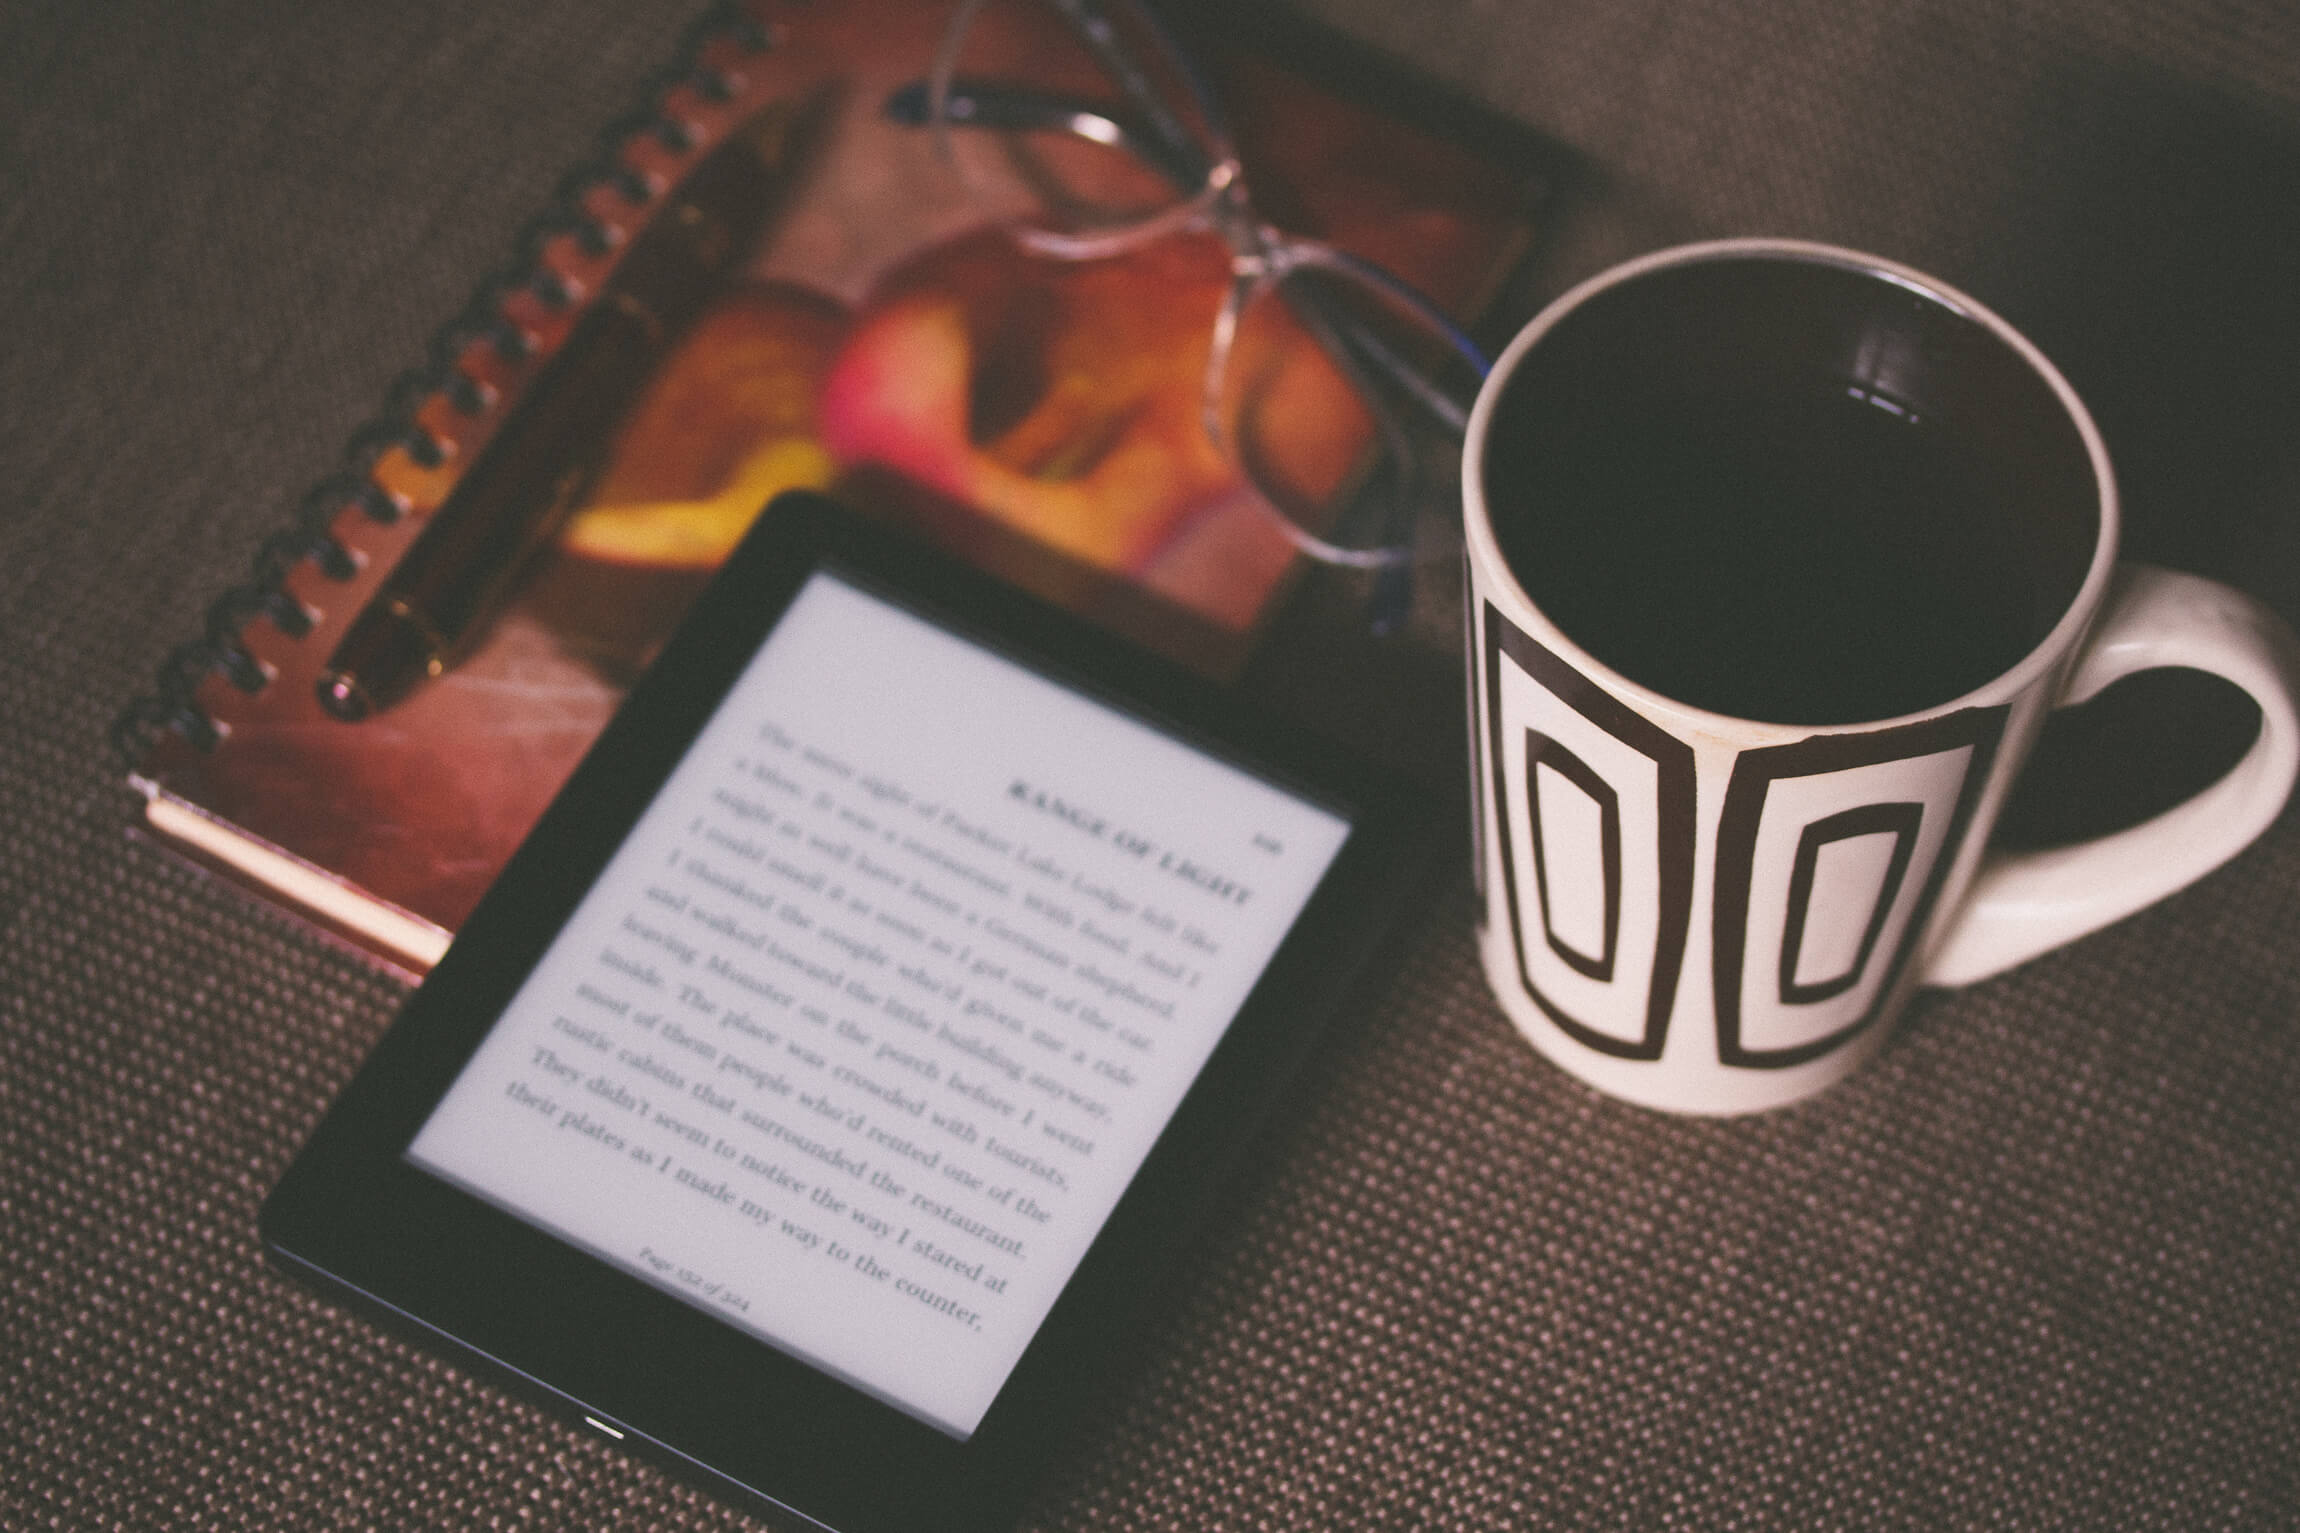 e reader on s notepoad with a mug for a post on free YA ebooks